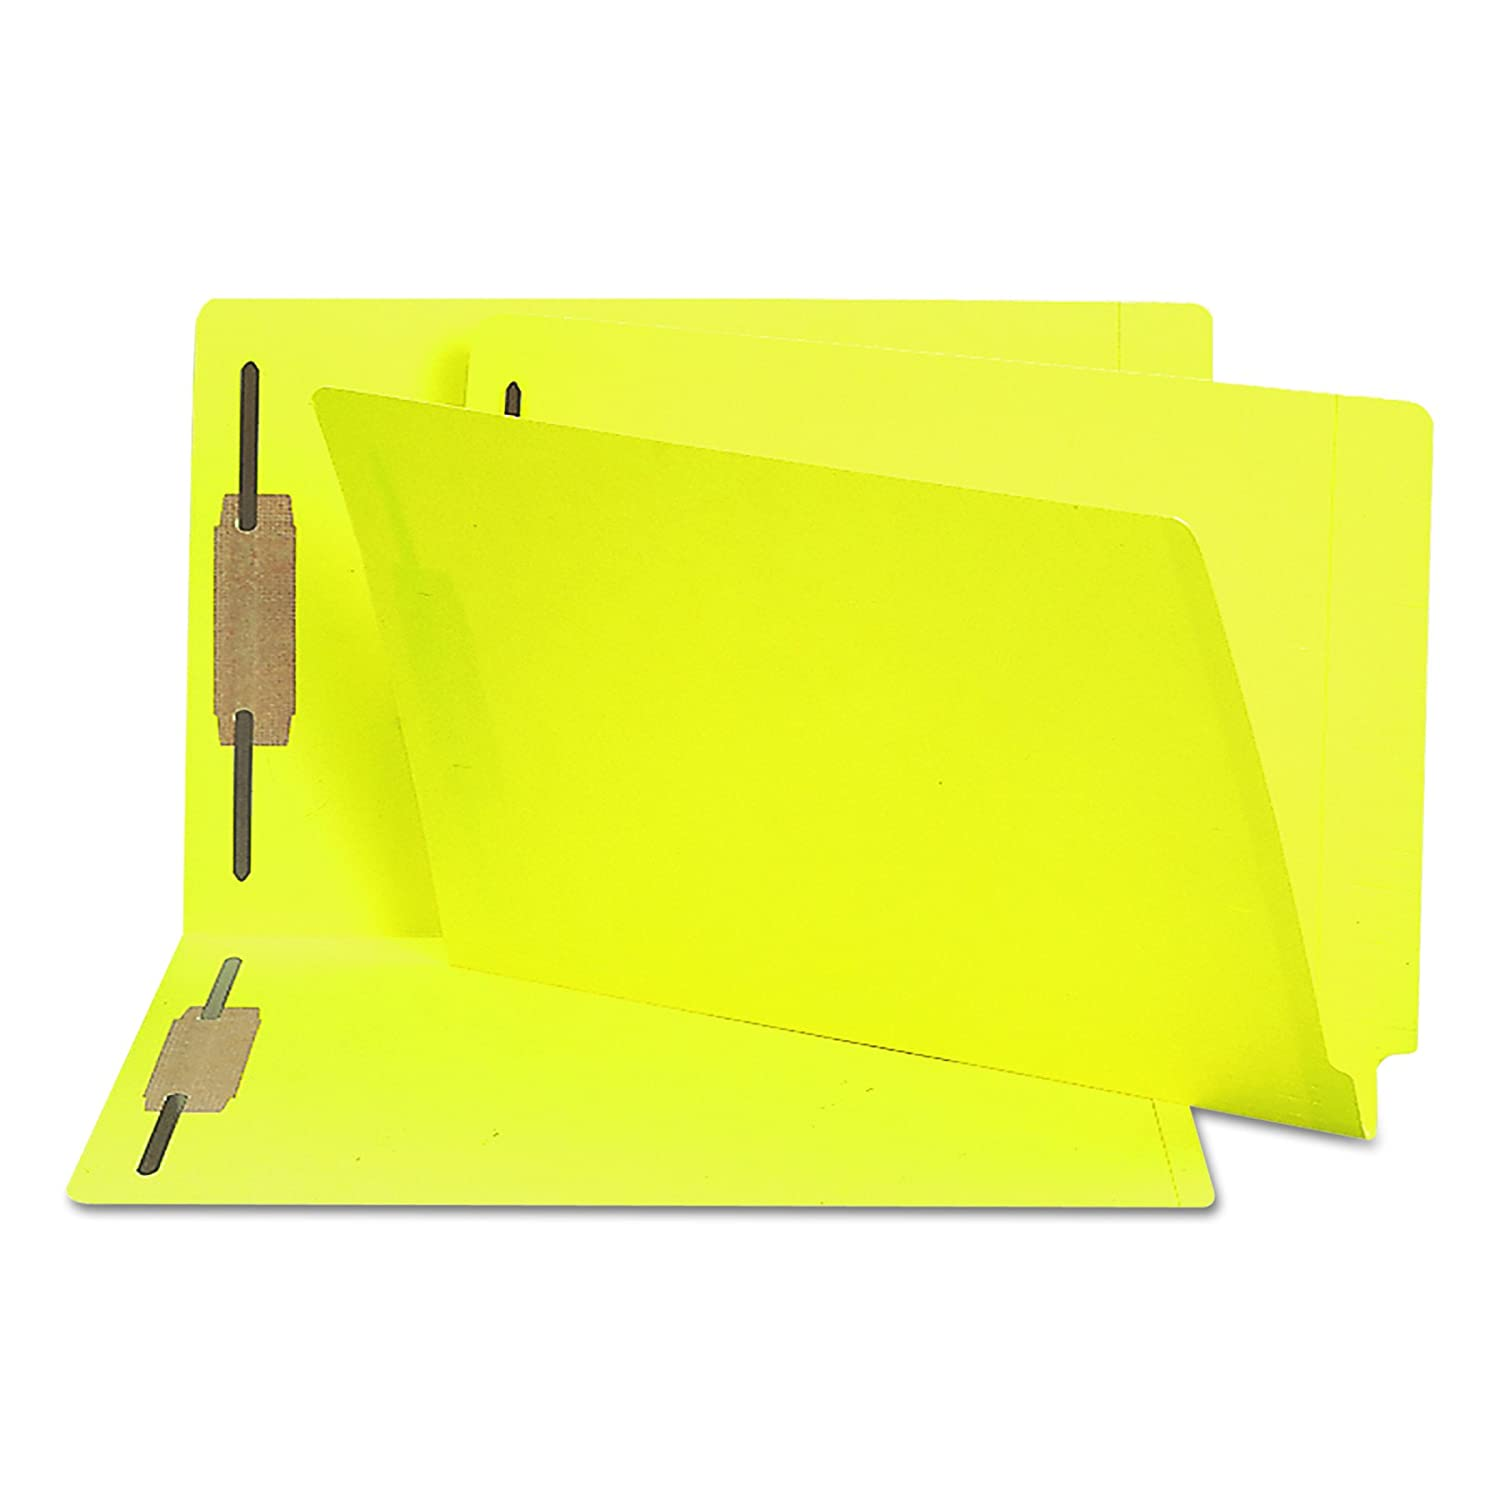 Smead End Tab Fastener Folder, Legal, Straight, Two 2-Inch Prong B Style #1 and #3 Fasteners, Yellow, 50 Per Box (28940)